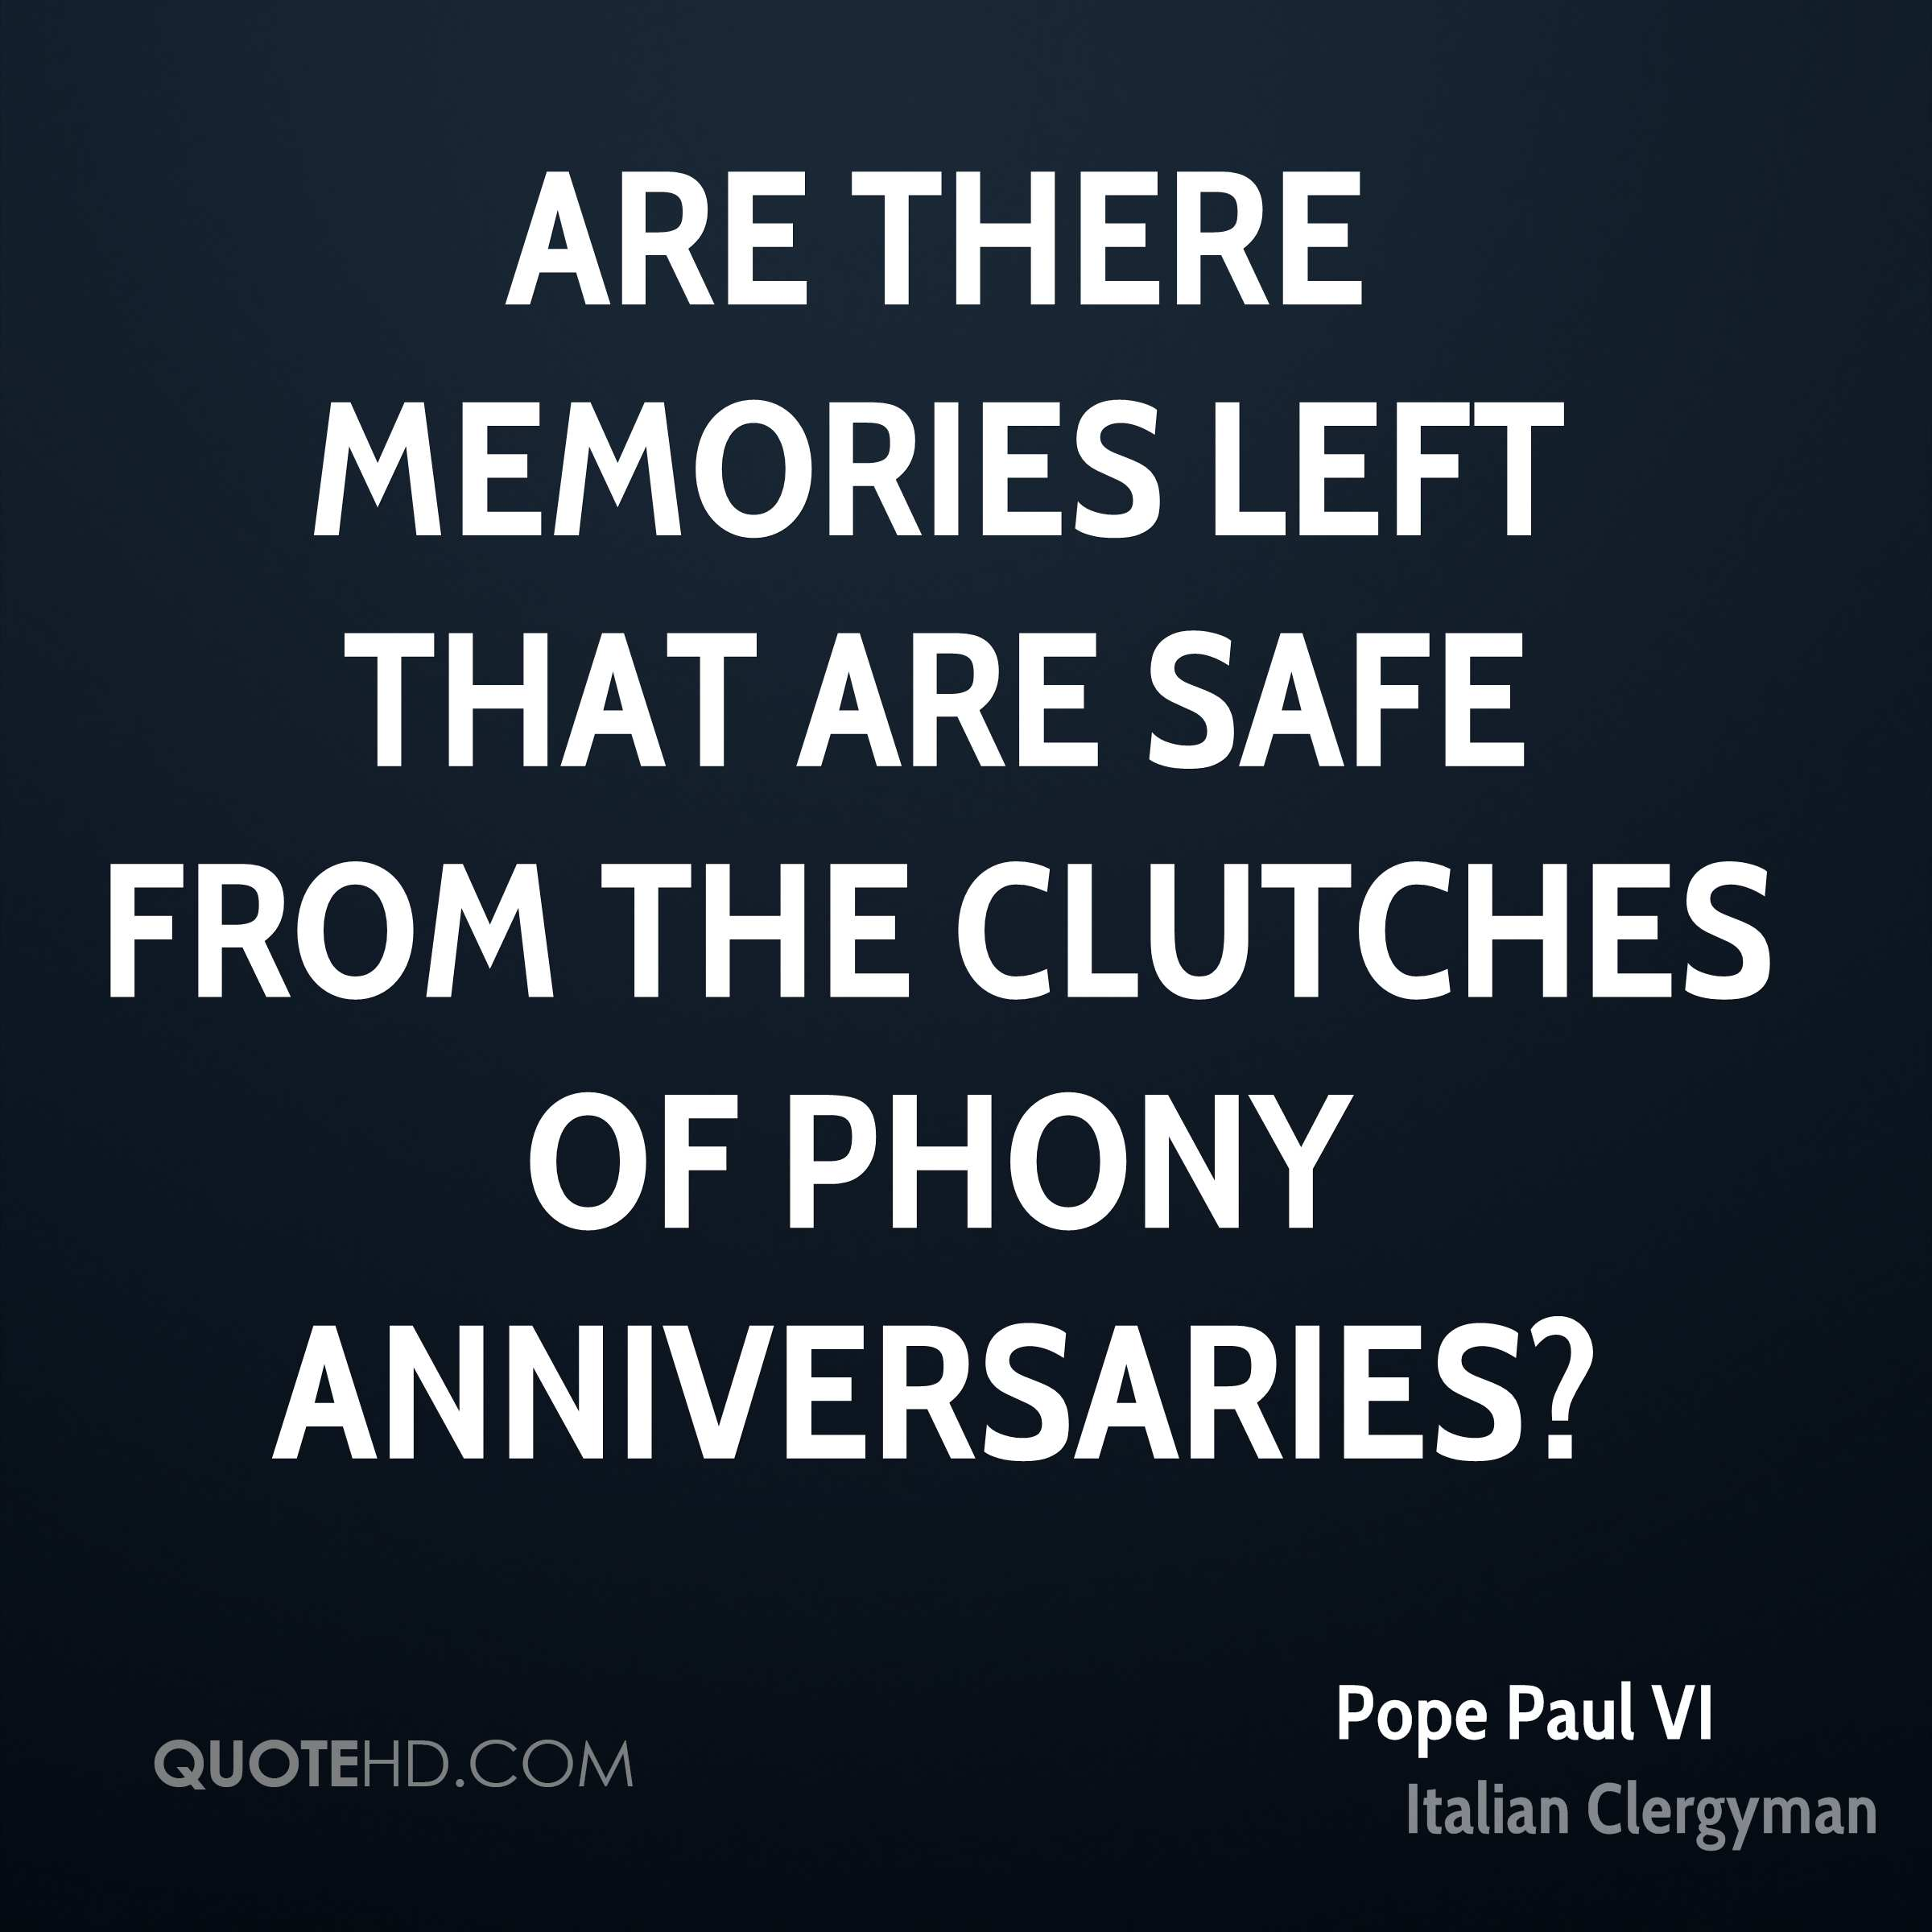 Are there memories left that are safe from the clutches of phony anniversaries?